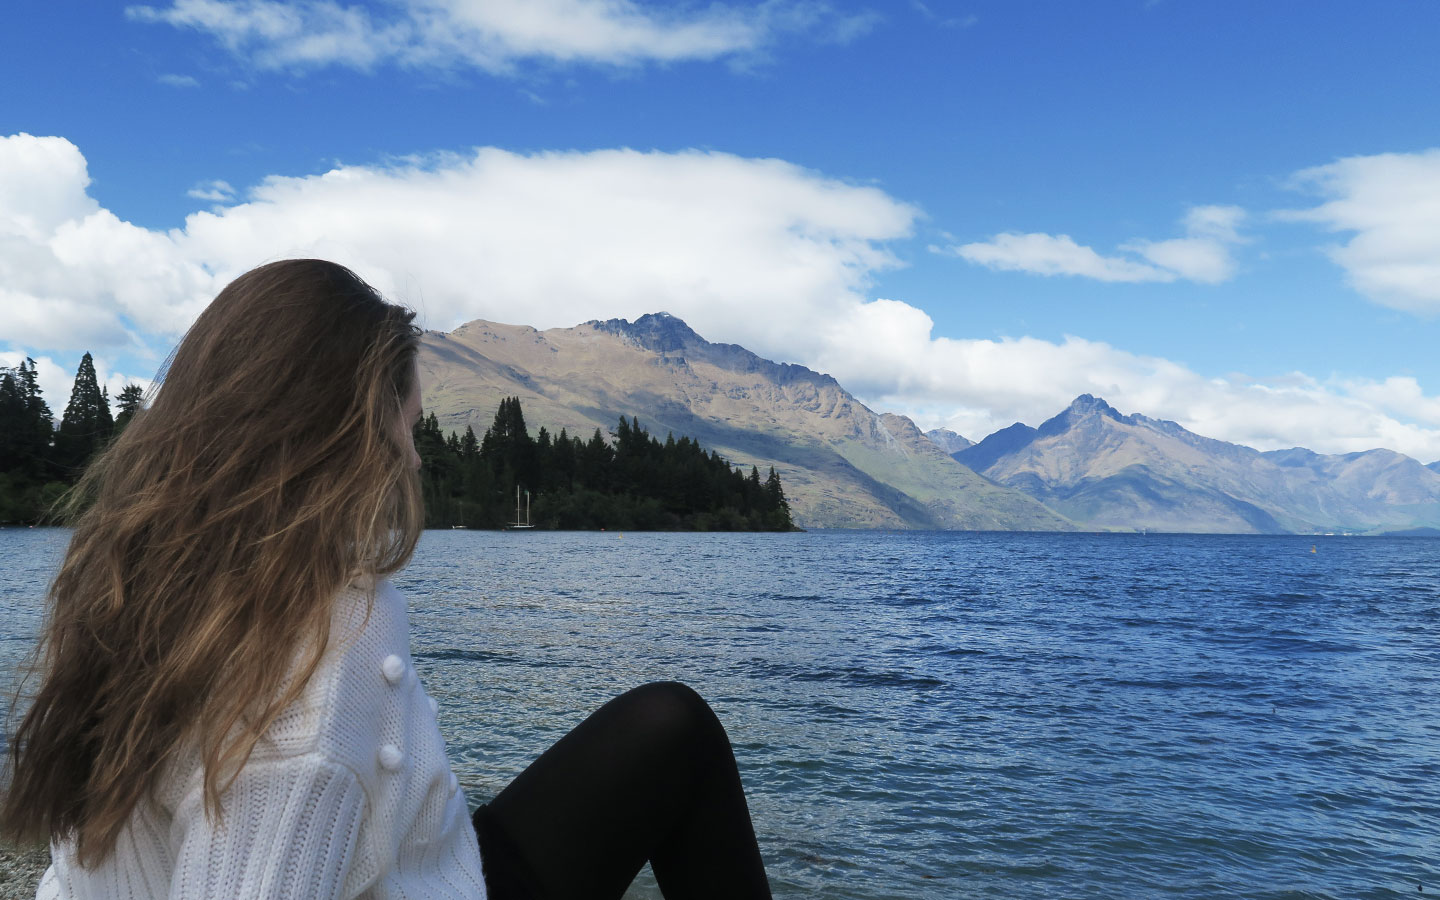 meliss carne sitting in front of mountains and lake wakatipu in new zealand